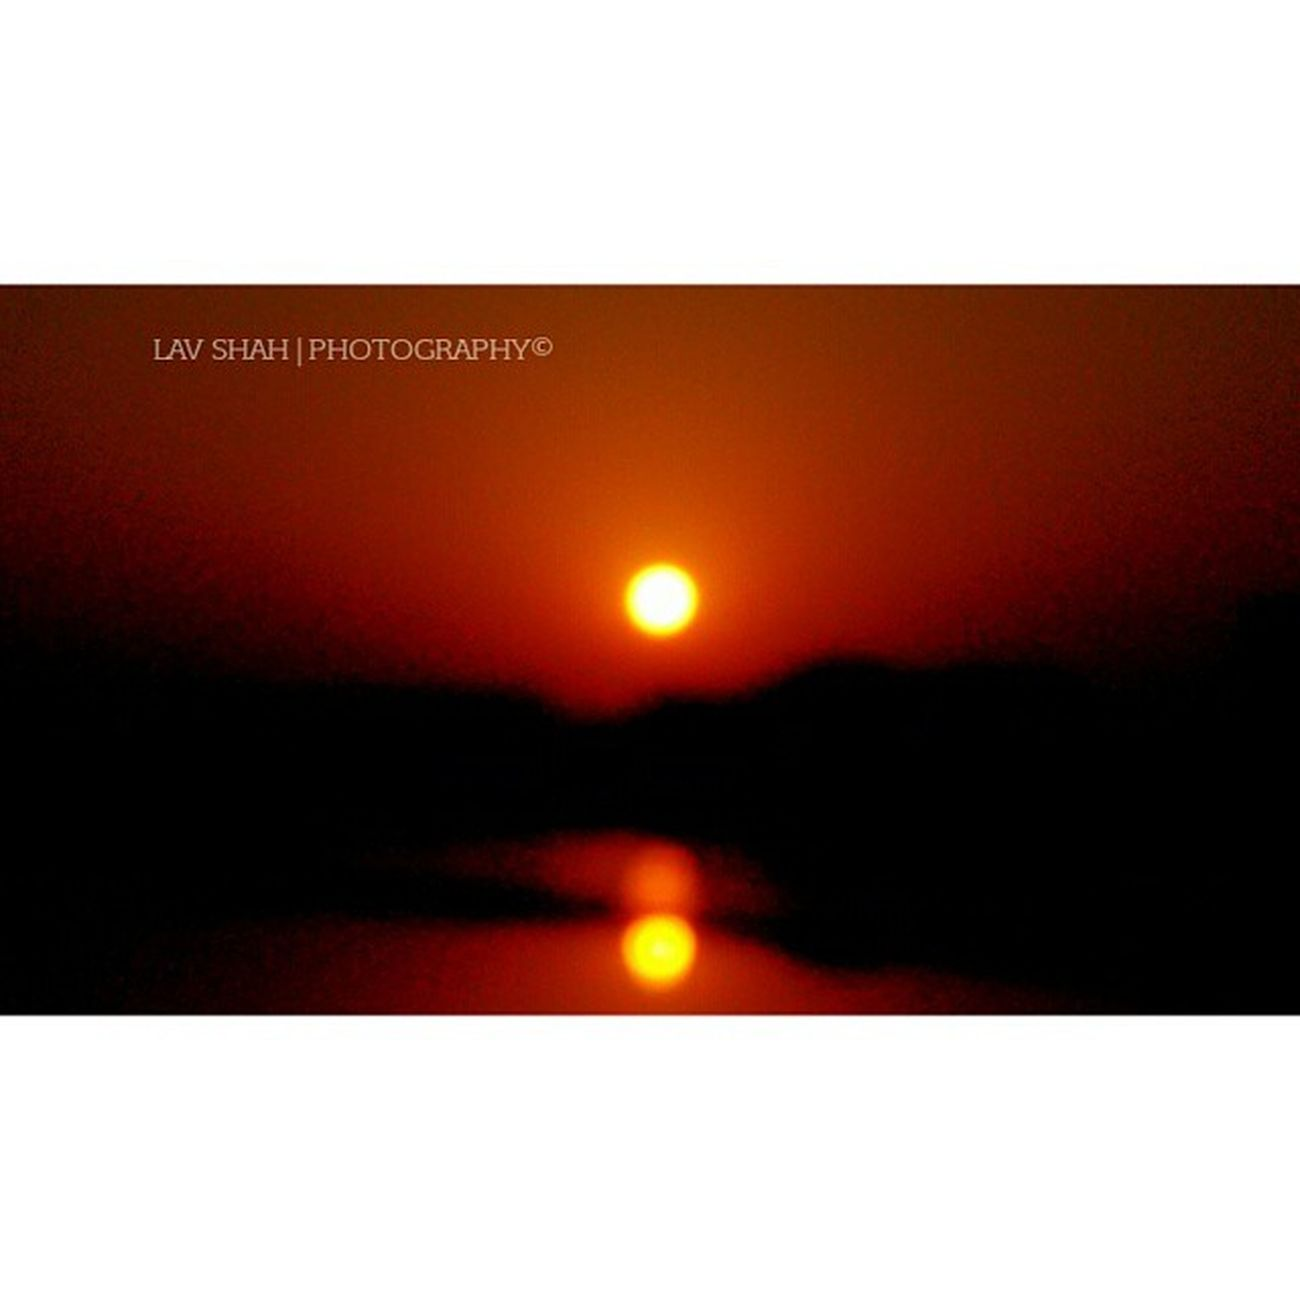 "A Complete Reflection Of sun in River ""TAPI""..! Nofilters Nature Naturalclick Sun Sunshine Sunset Reflection River Tapi Surat_promotions Suratpride Surat_igers Suratphotography Ig_surat Ilovesurat Igsurat India_clicks Iamsuratcity"